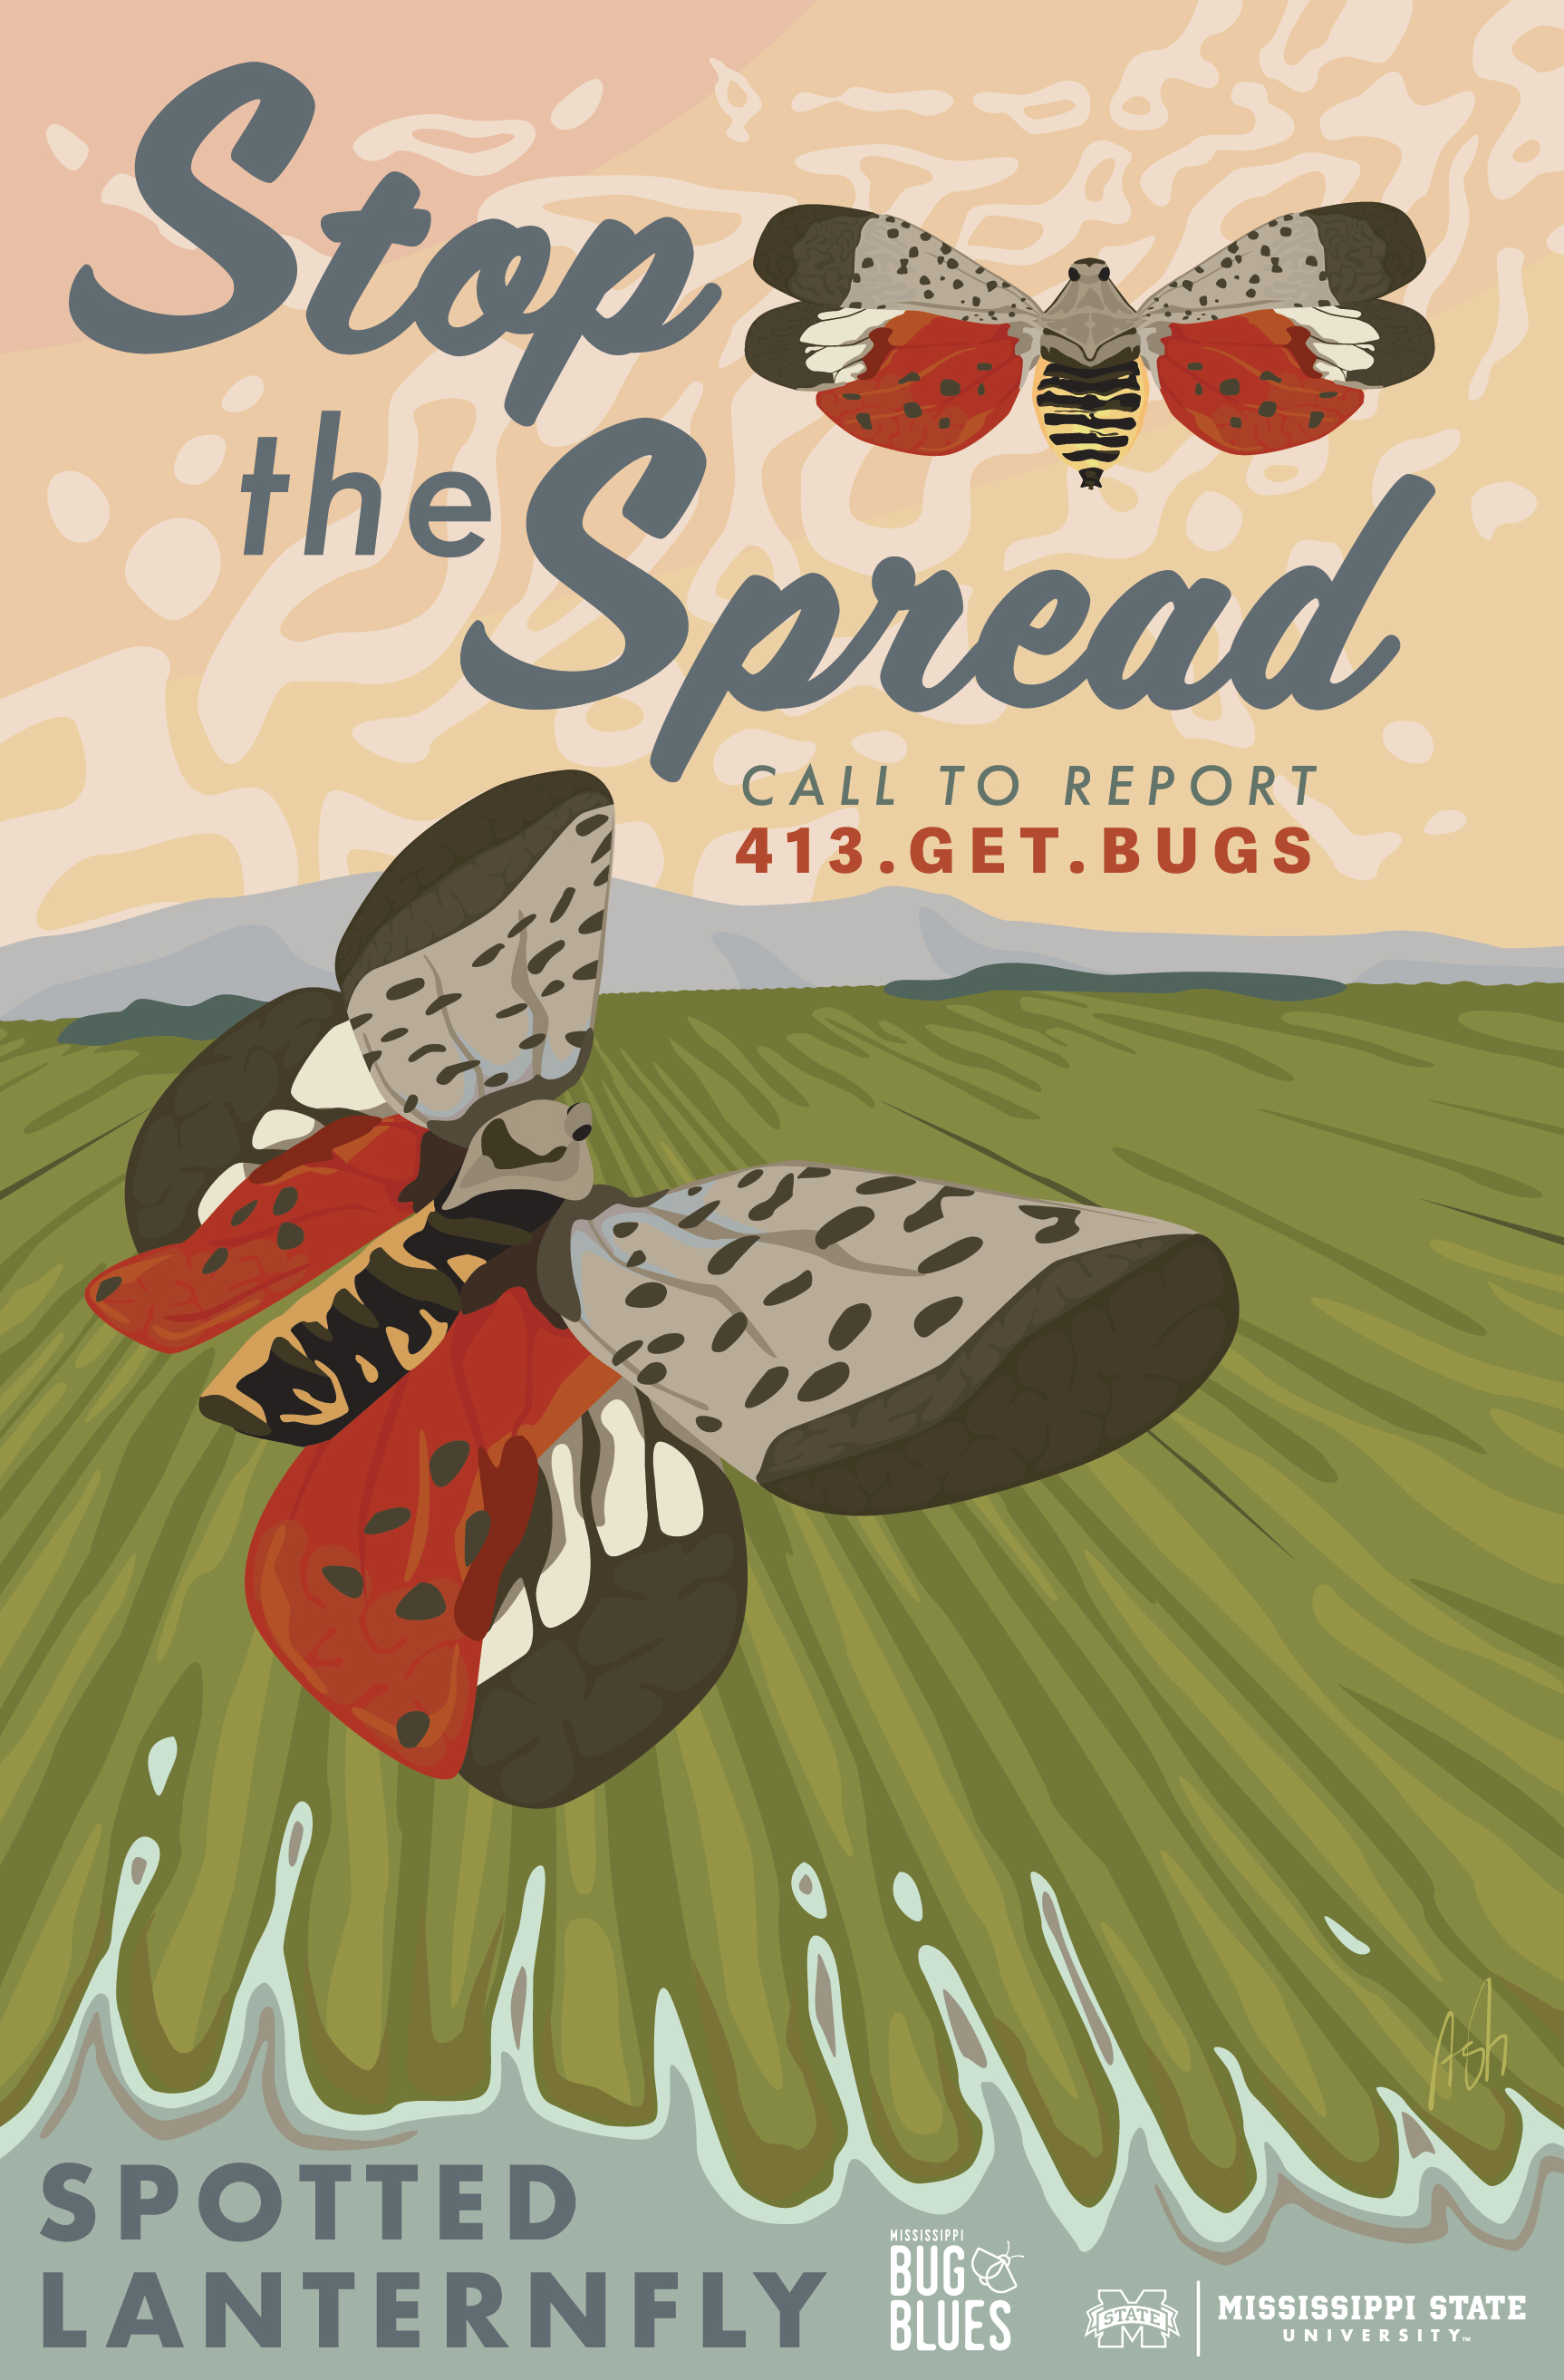 stop the spread invasive insect spotted lanternfly lantern fly awareness WPA crop crops field